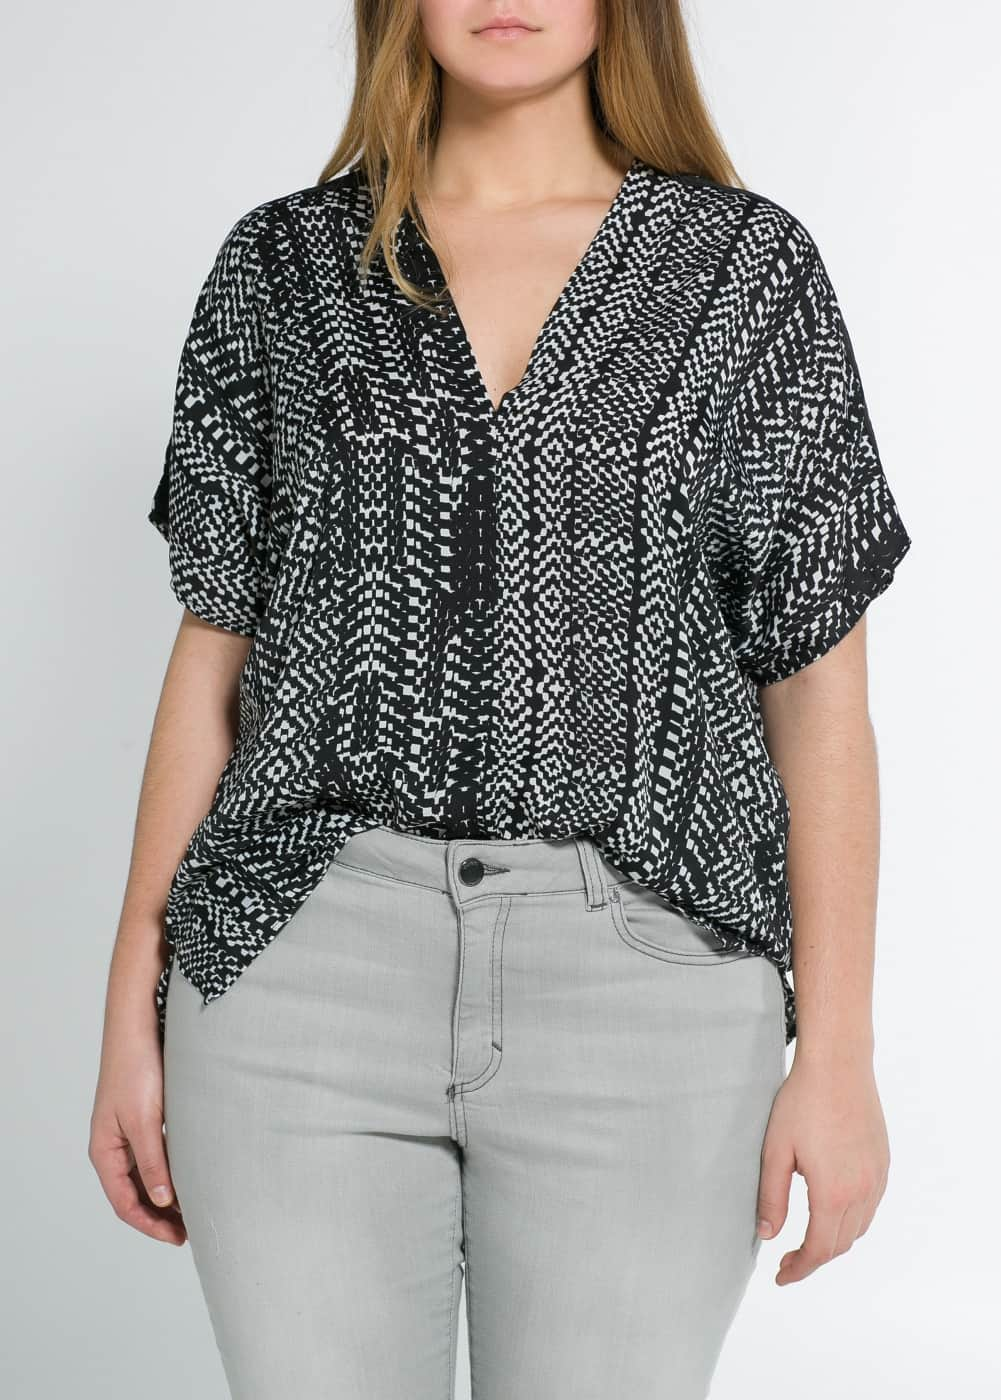 Monochrome print top